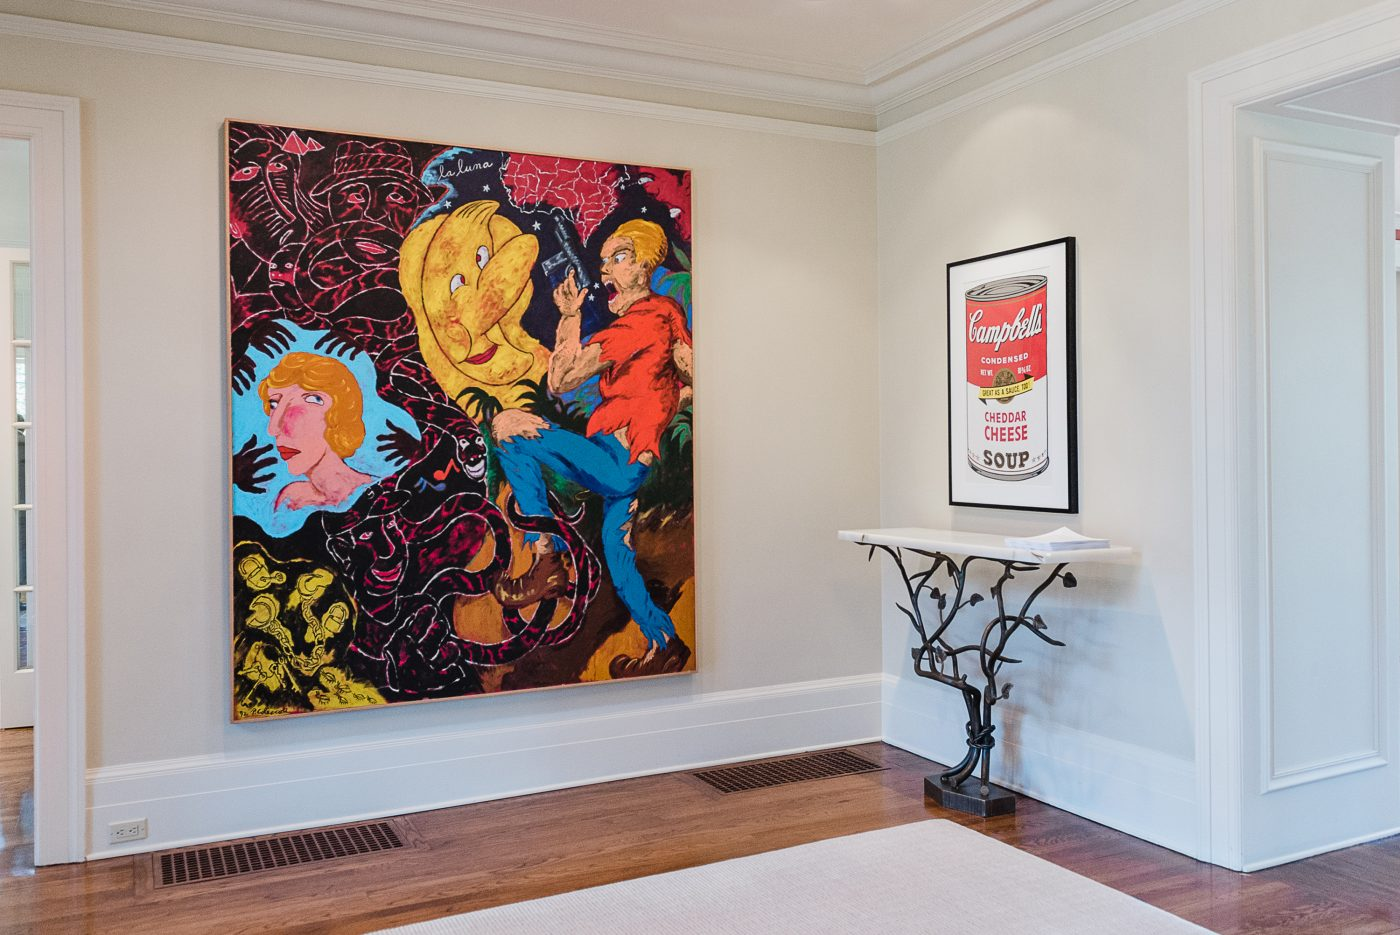 Jordan Schnitzer's home in Portland, Oregon: Campbell's Soup II: Cheddar Cheese, 1969, by Andy Warhol and La Luna (That Old Devil Moon), 1992